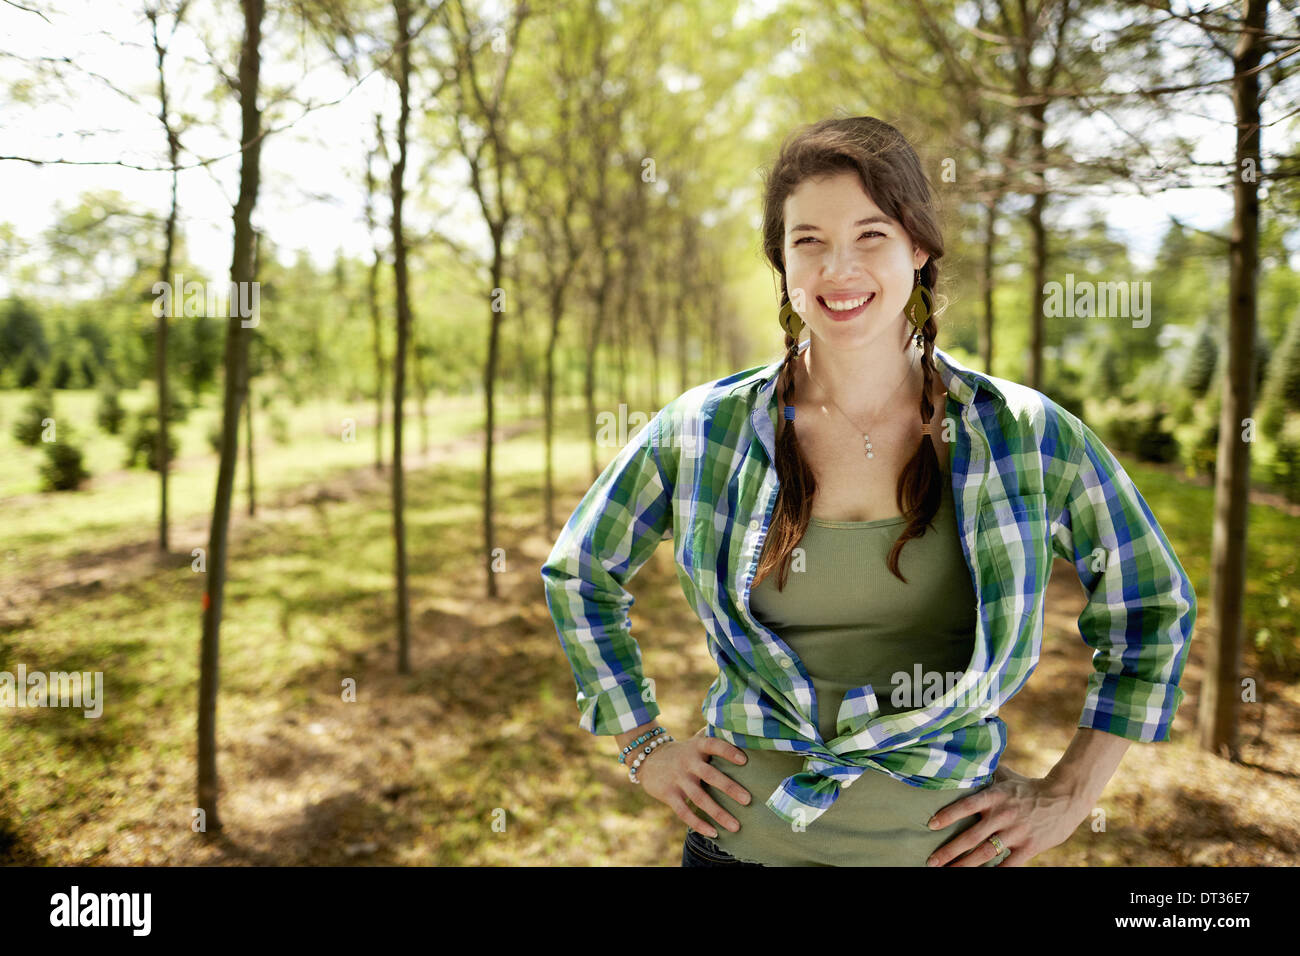 A girl in a green checked shirt with braids - Stock Image